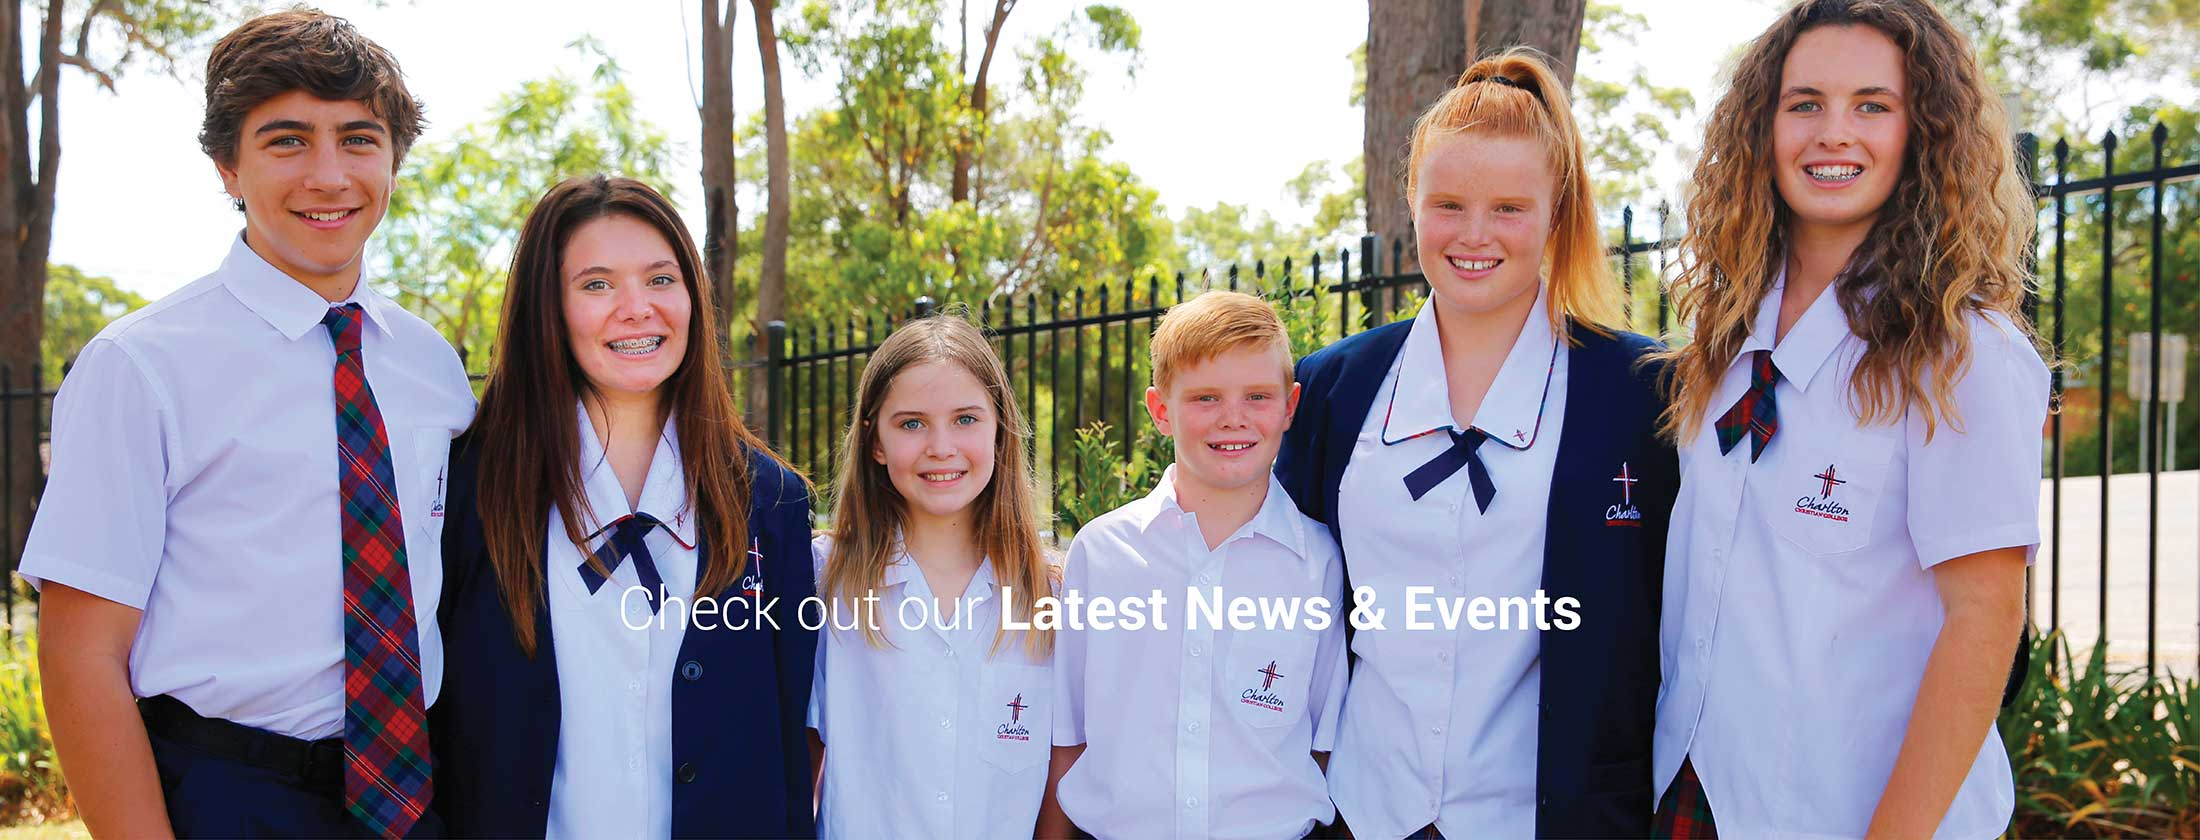 charlton christian college news and events